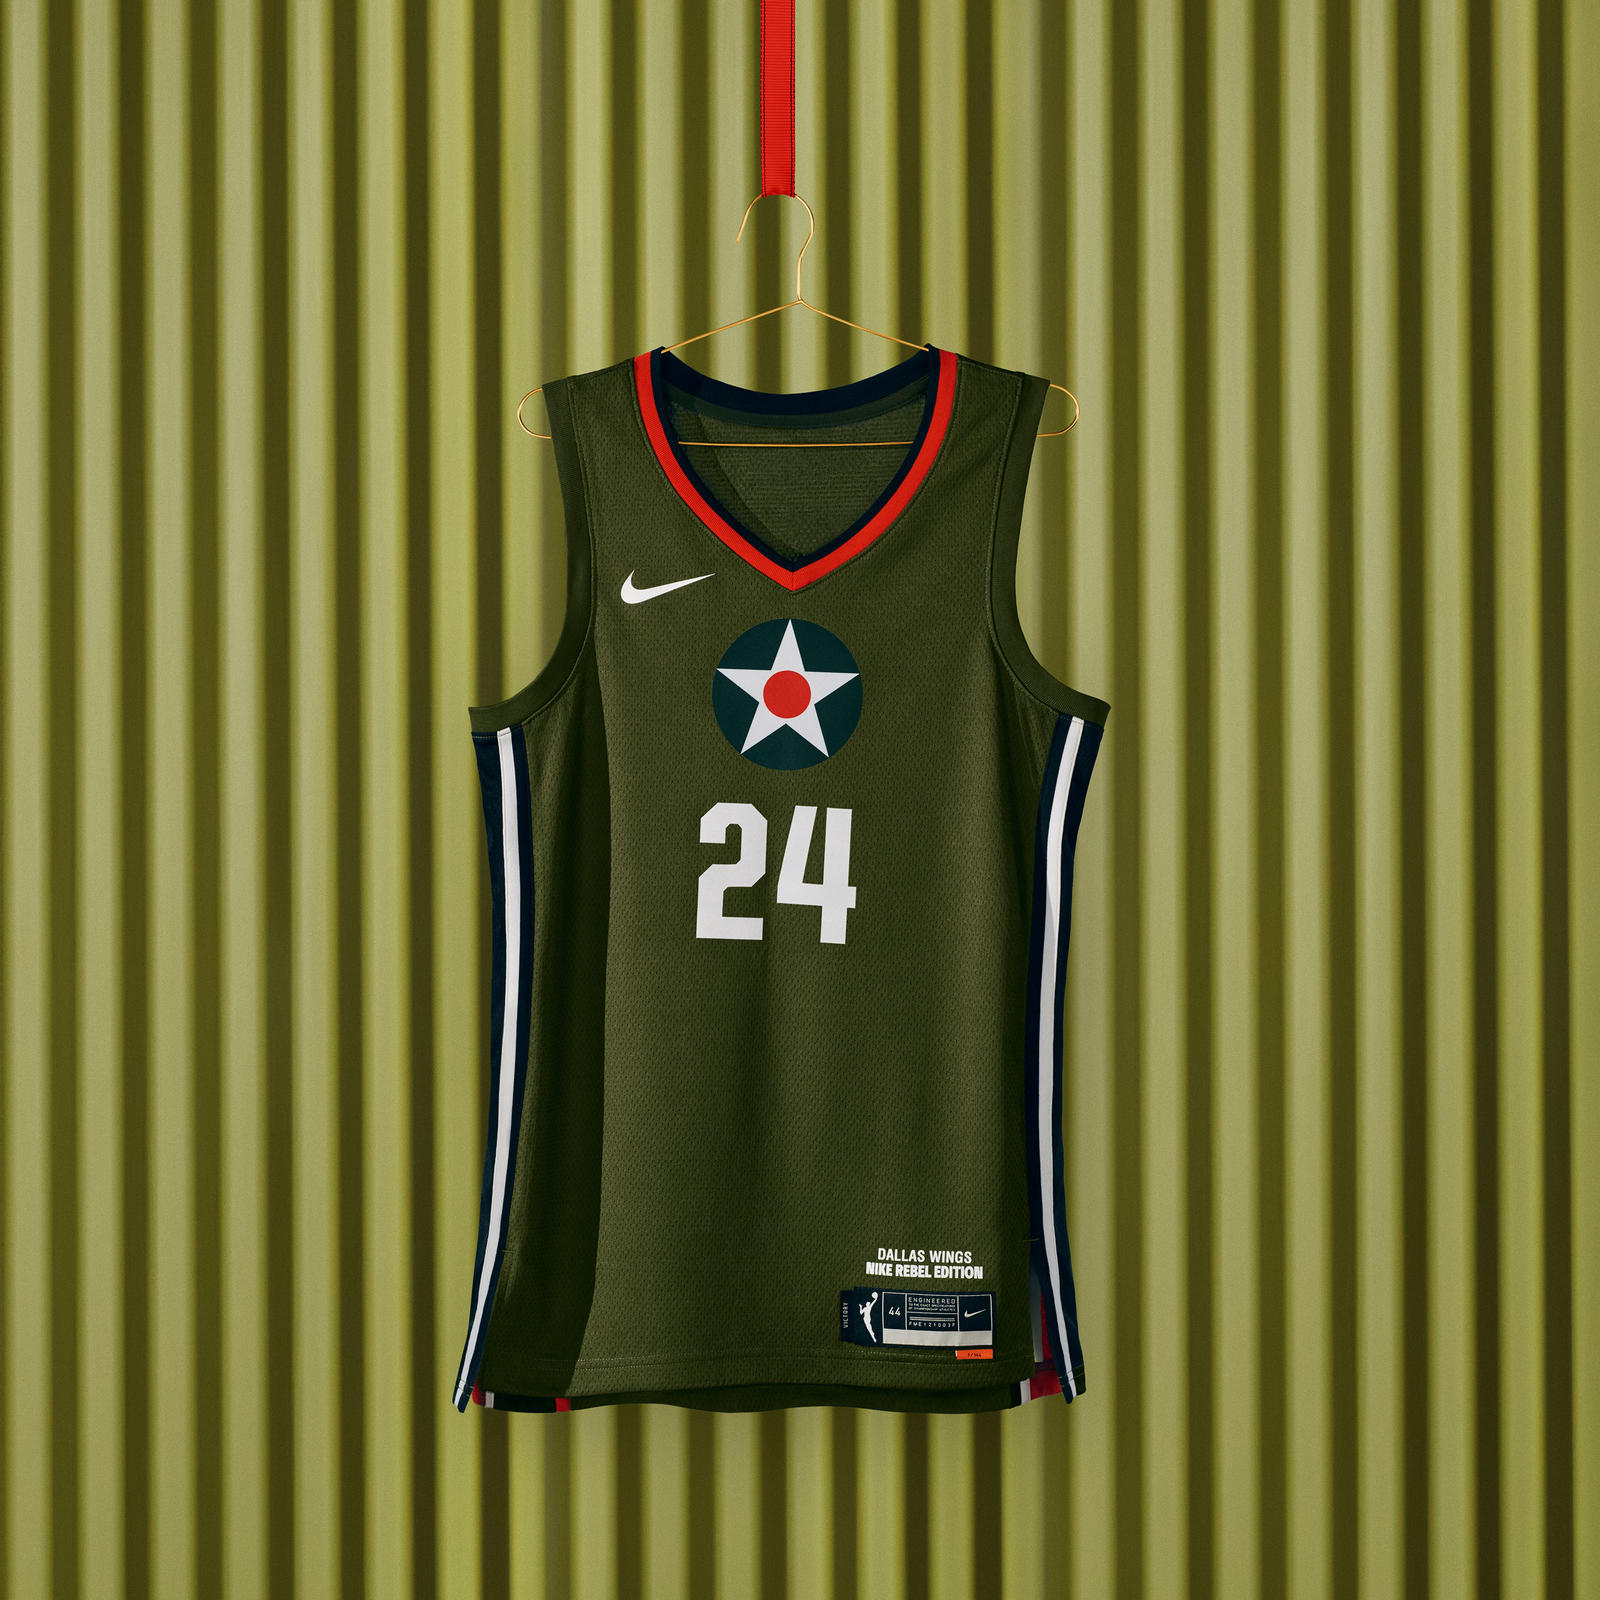 Nike WNBA 2021 Uniform Editions  9